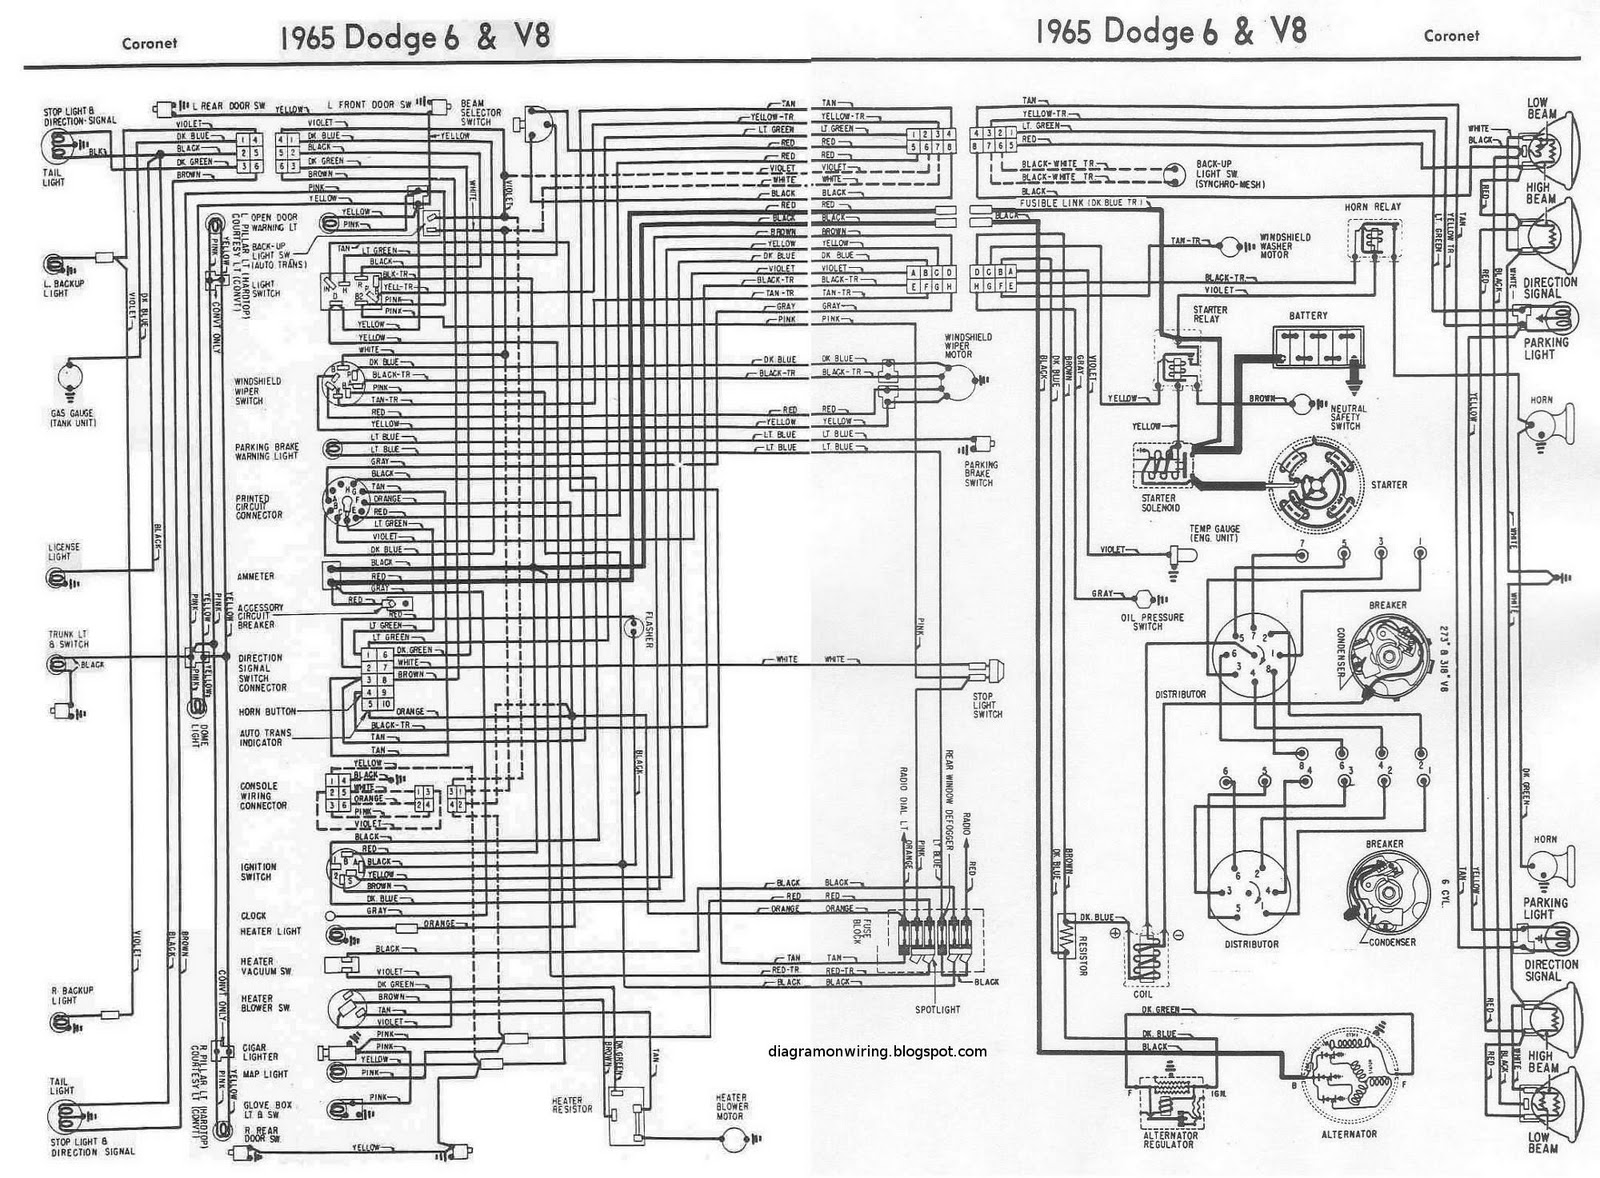 1965+Dodge+6+and+V8+Coronet+Complete+Electrical+Wiring+Diagram dodge 6 and v8 coronet 1965 complete wiring diagram all about 1970 dodge coronet wiring diagram at crackthecode.co